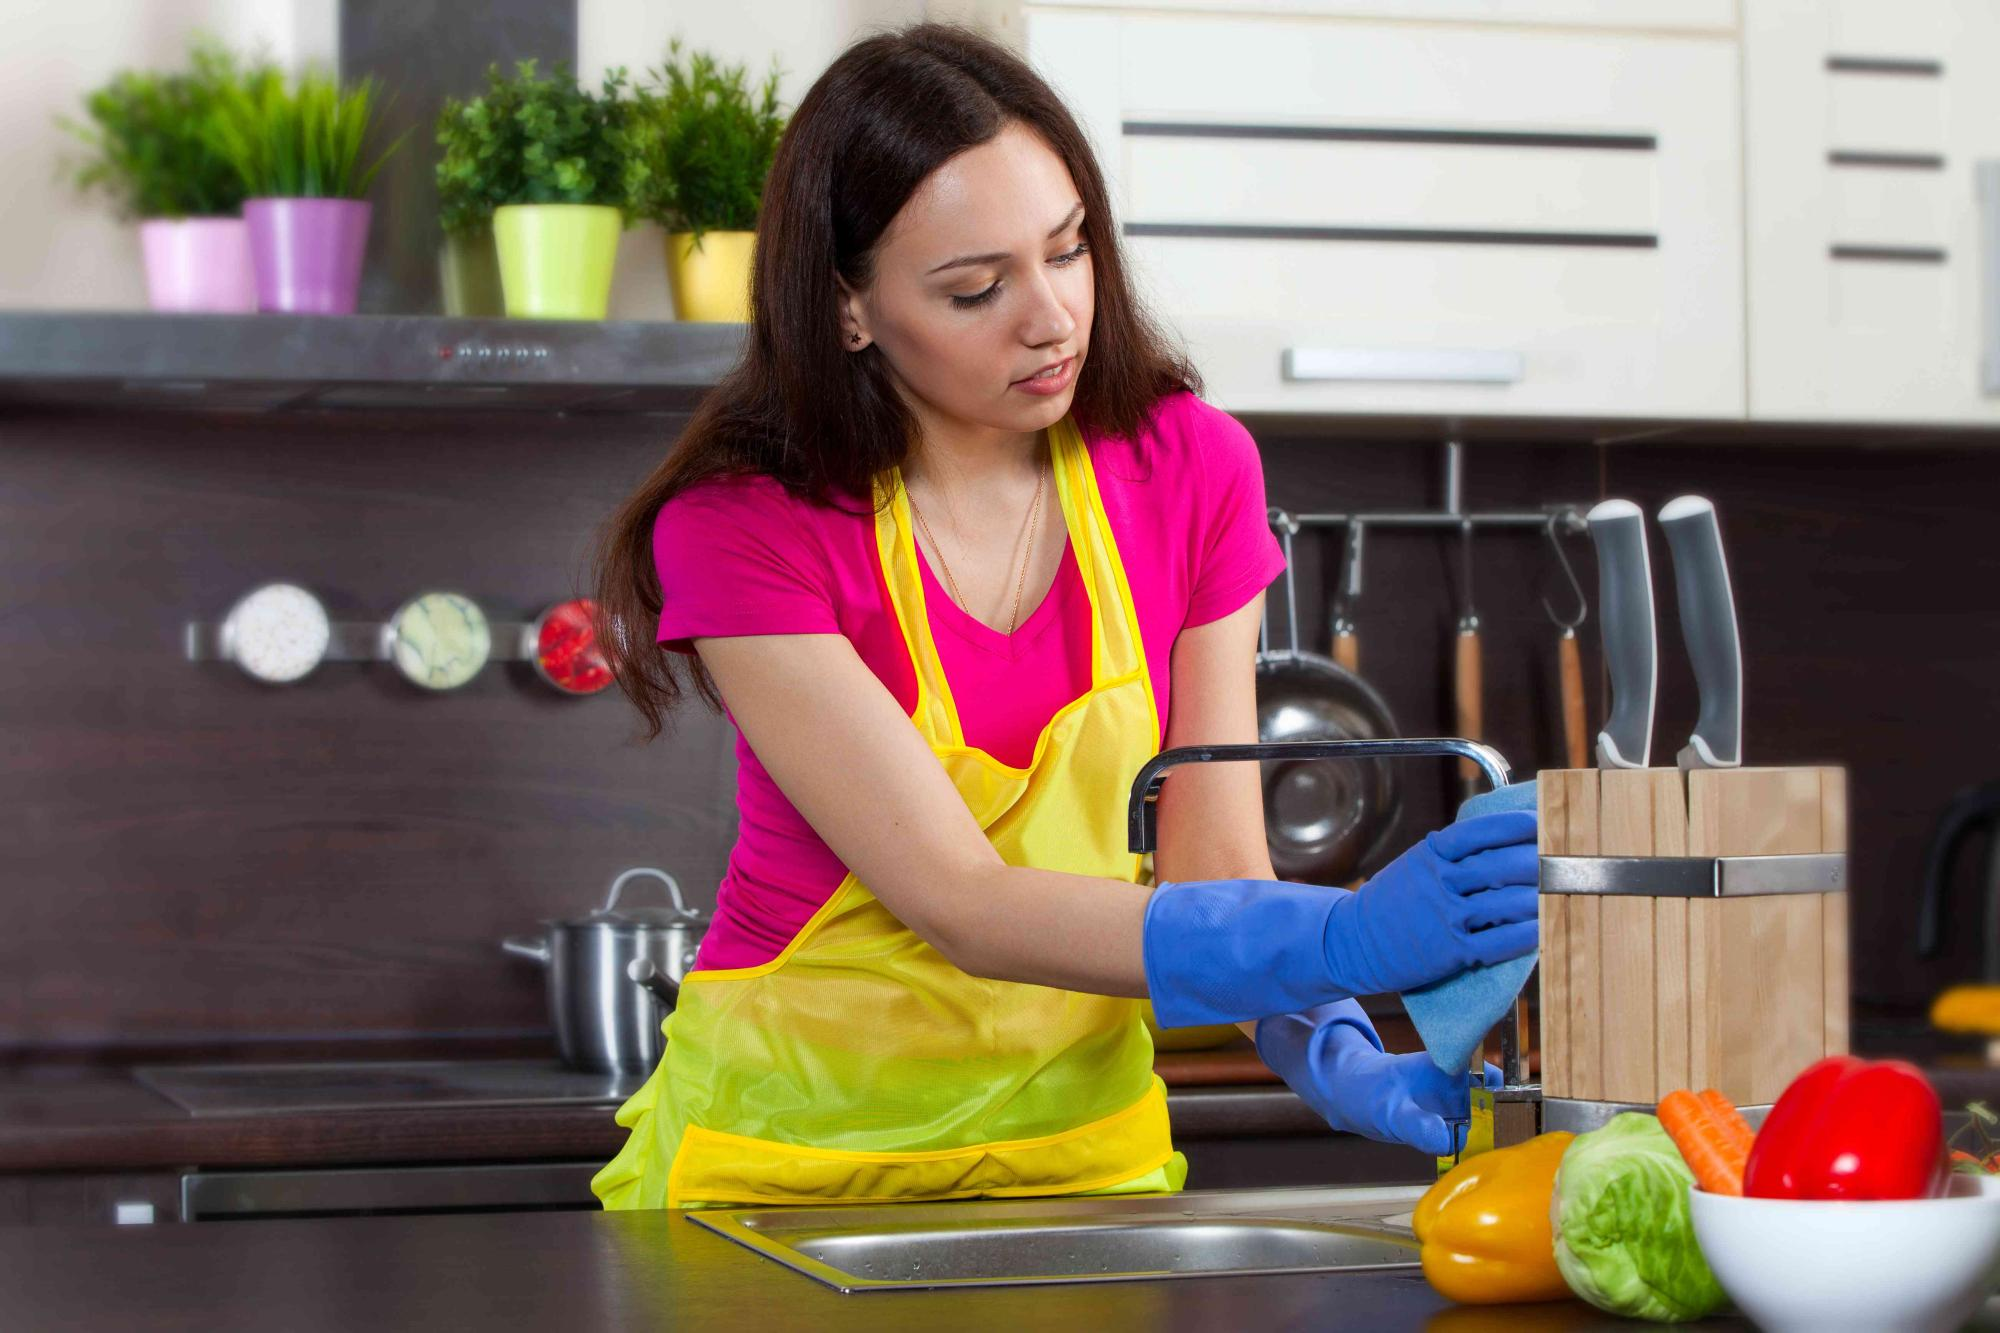 Record-Speed House Cleaning Tips  From Your Thousand Oaks Storage Experts